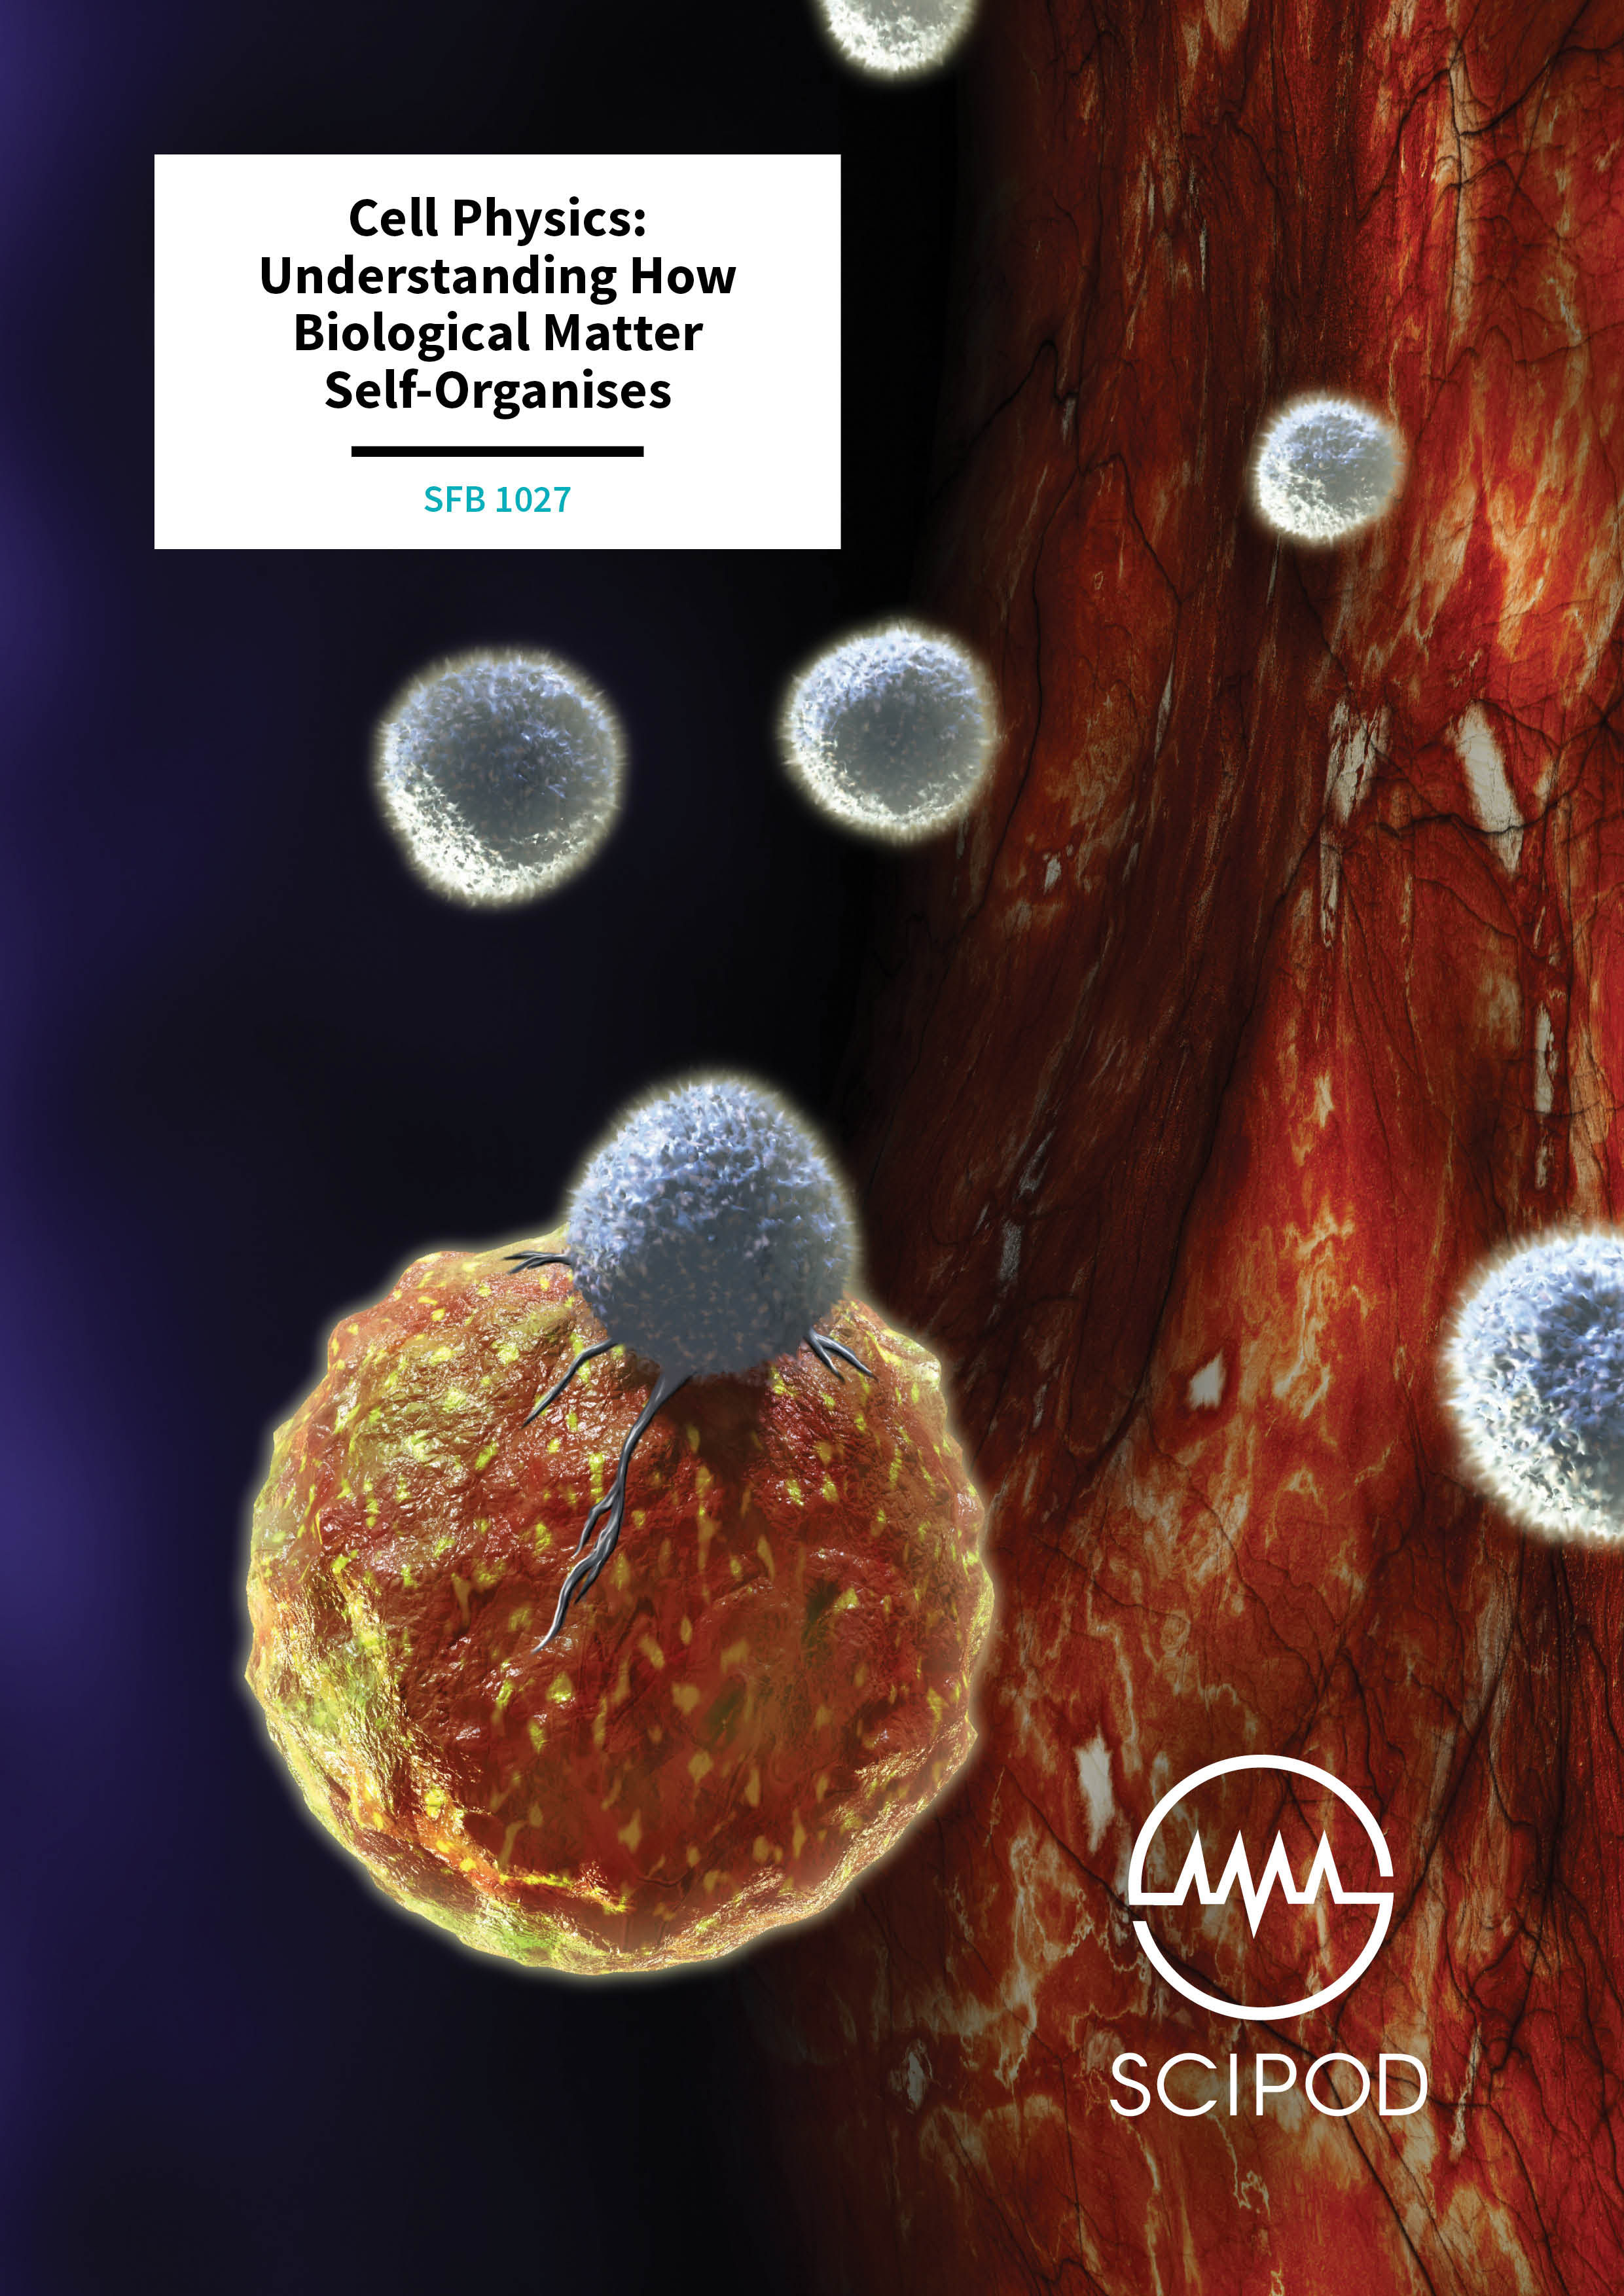 Cell Physics, Understanding How Biological Matter Self-Organises – The Collaborative Research Centre SFB 1027 at the Saarland University